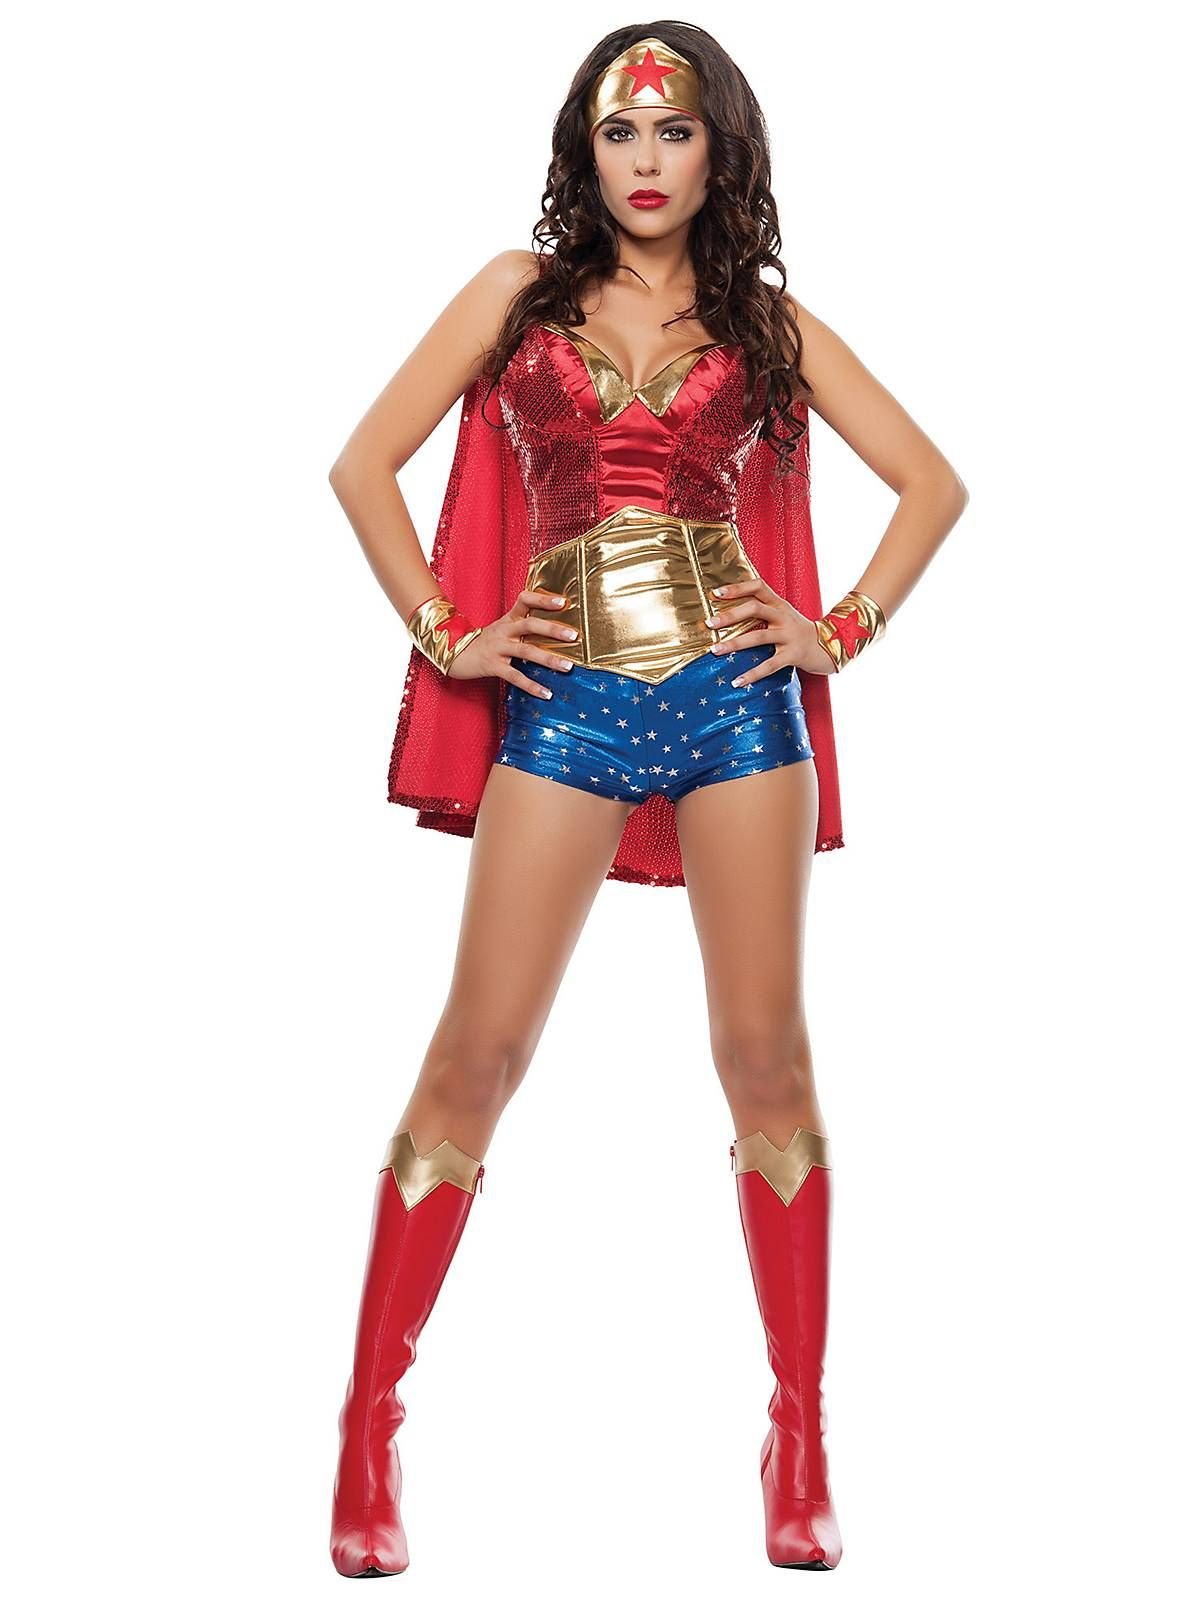 ba397ad5 Women's Sexy Wonder Lady Costume! See more #costume ideas for Halloween and  more at CostumeSuperCenter.com